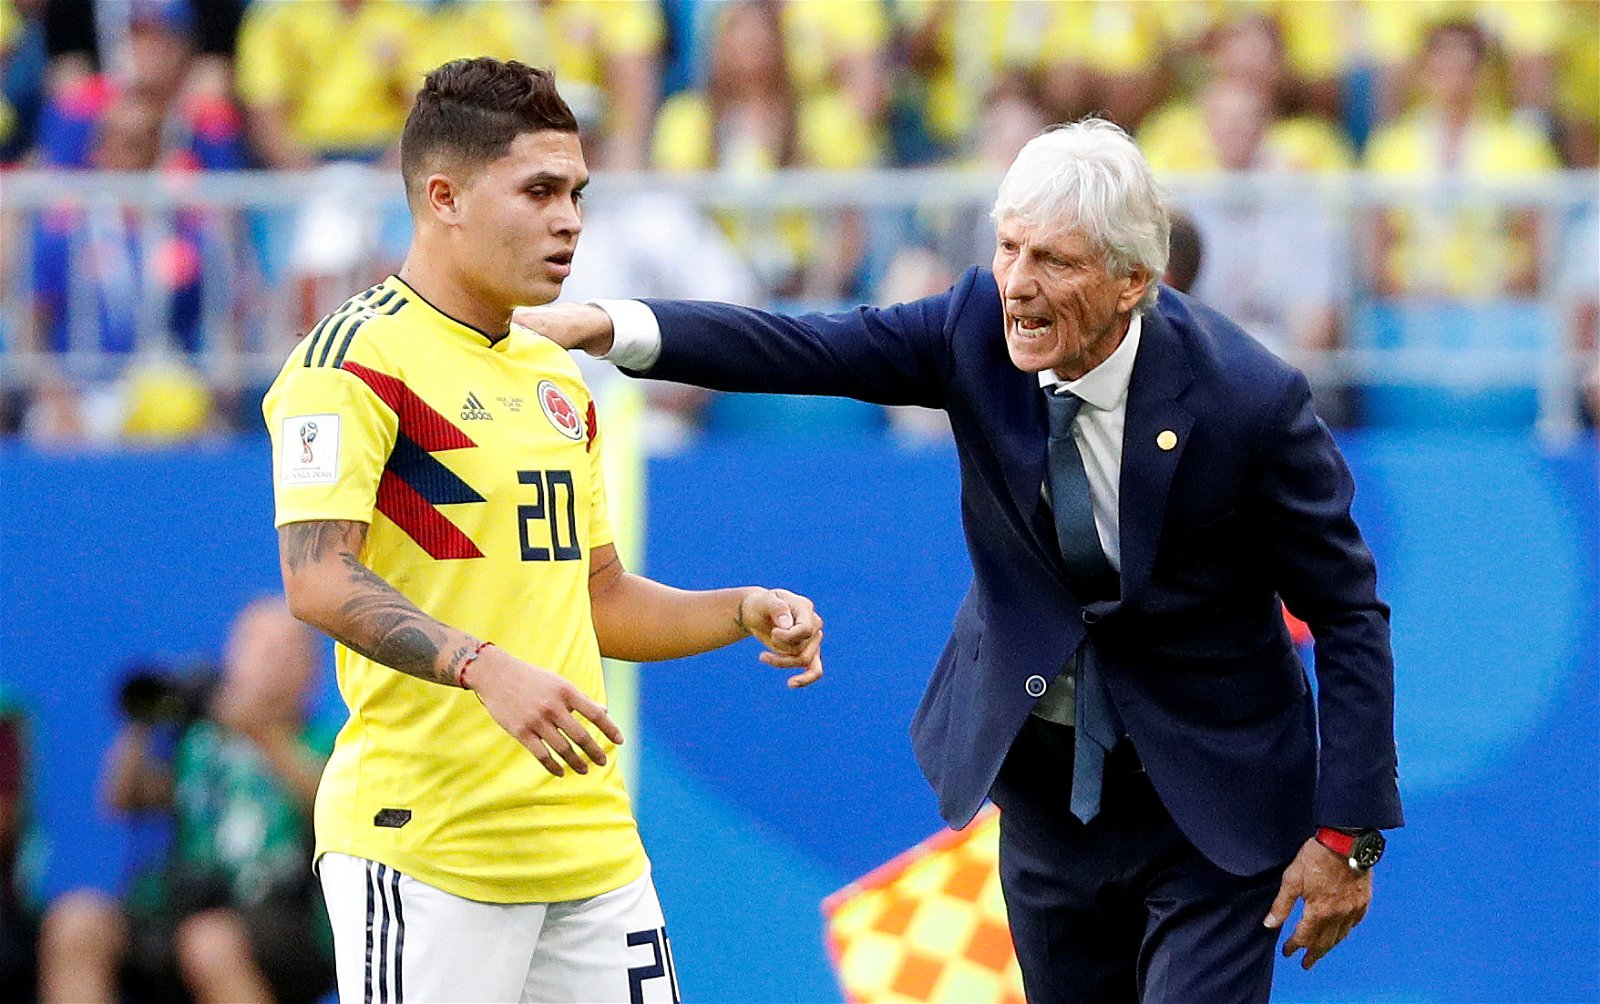 Juan Quintero receives instructions from his manager